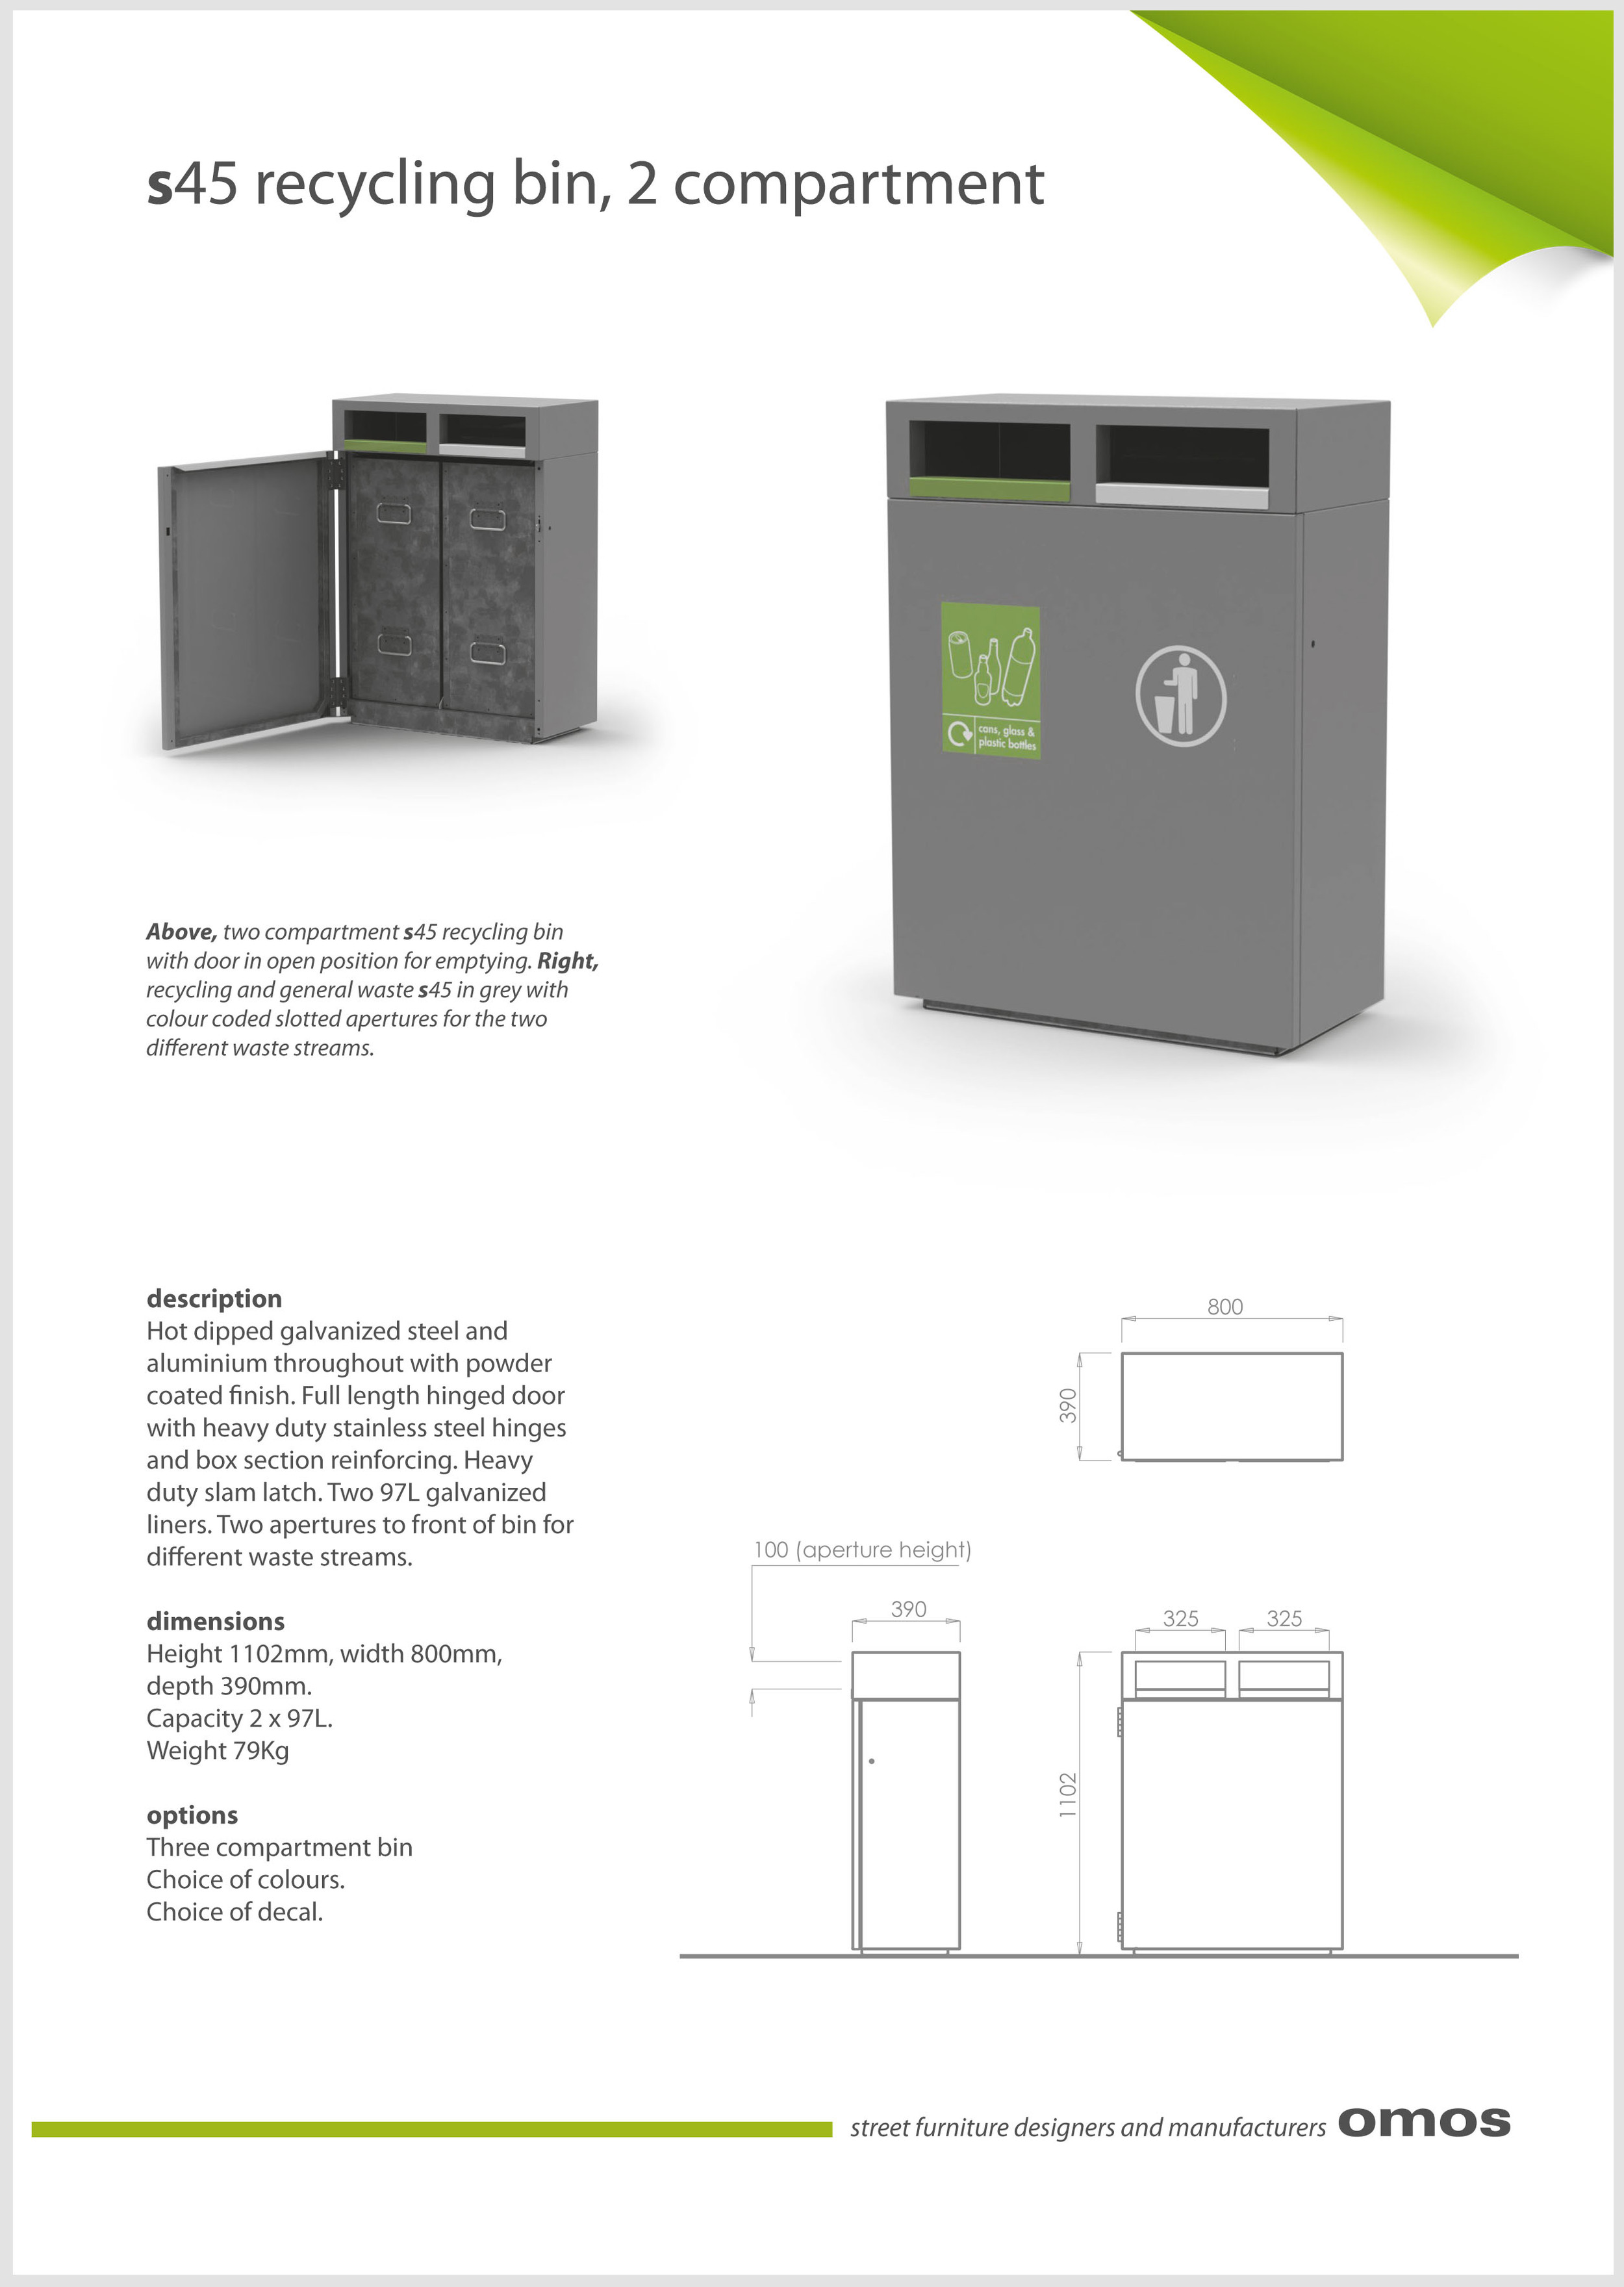 s45 recycling (2 compartment) data sheet.jpg